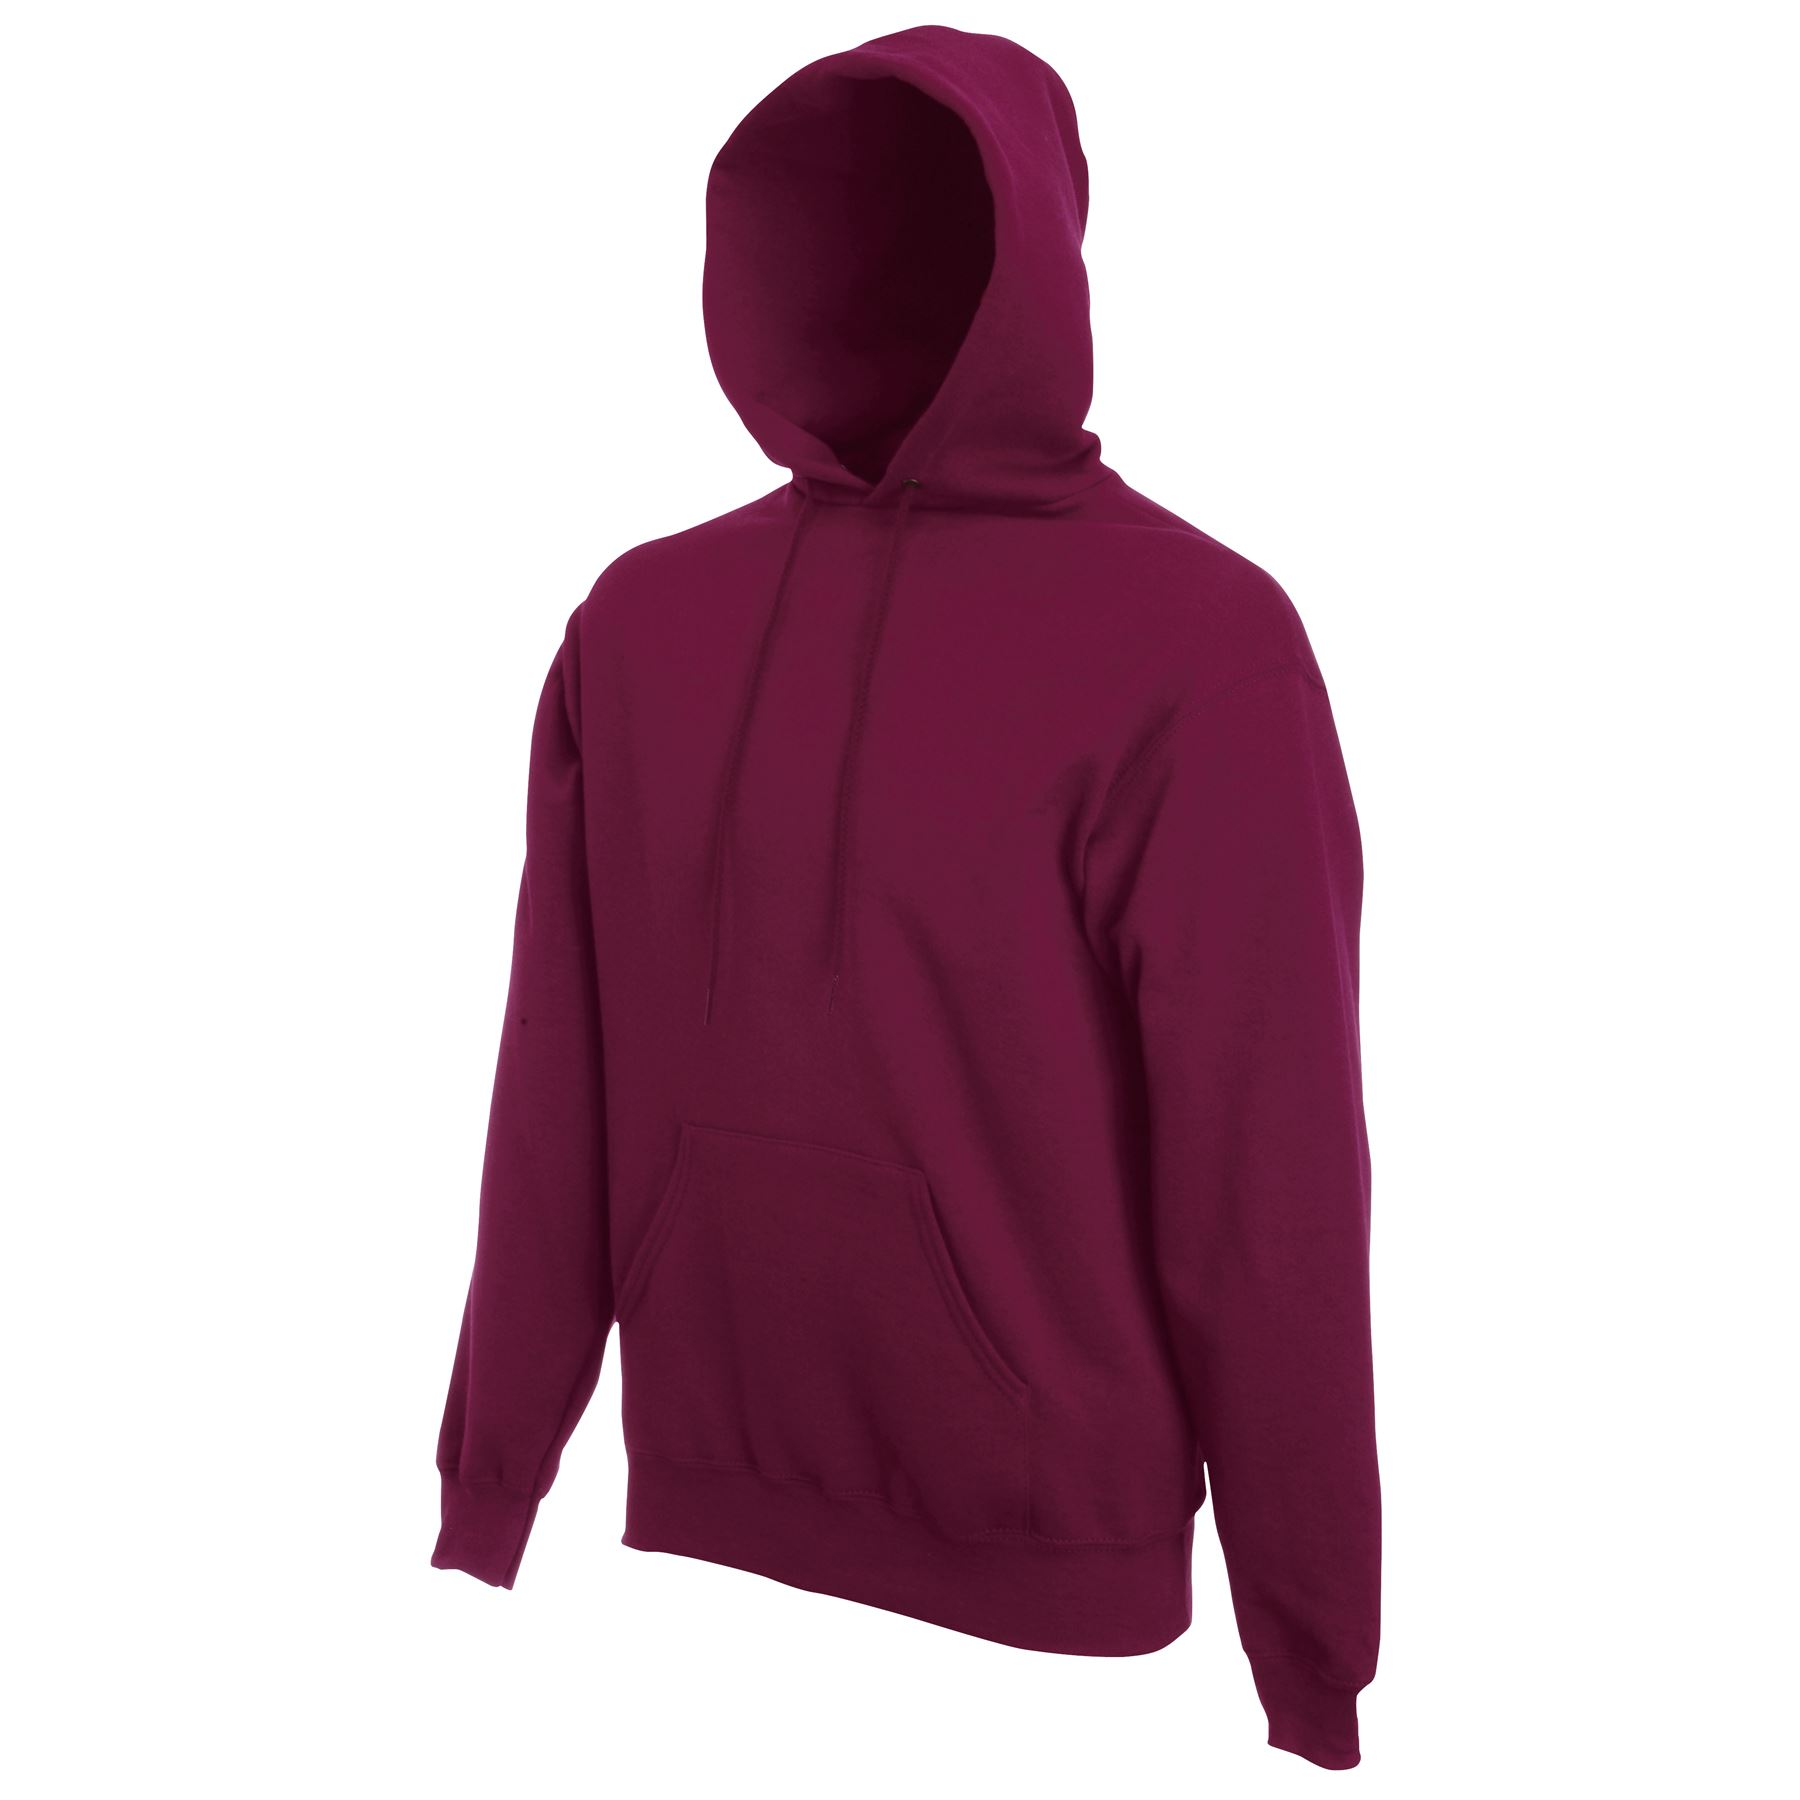 Fruit of The Loom Hooded Sweatshirt Plain Hoodie Pullover Hoody Jumper ...